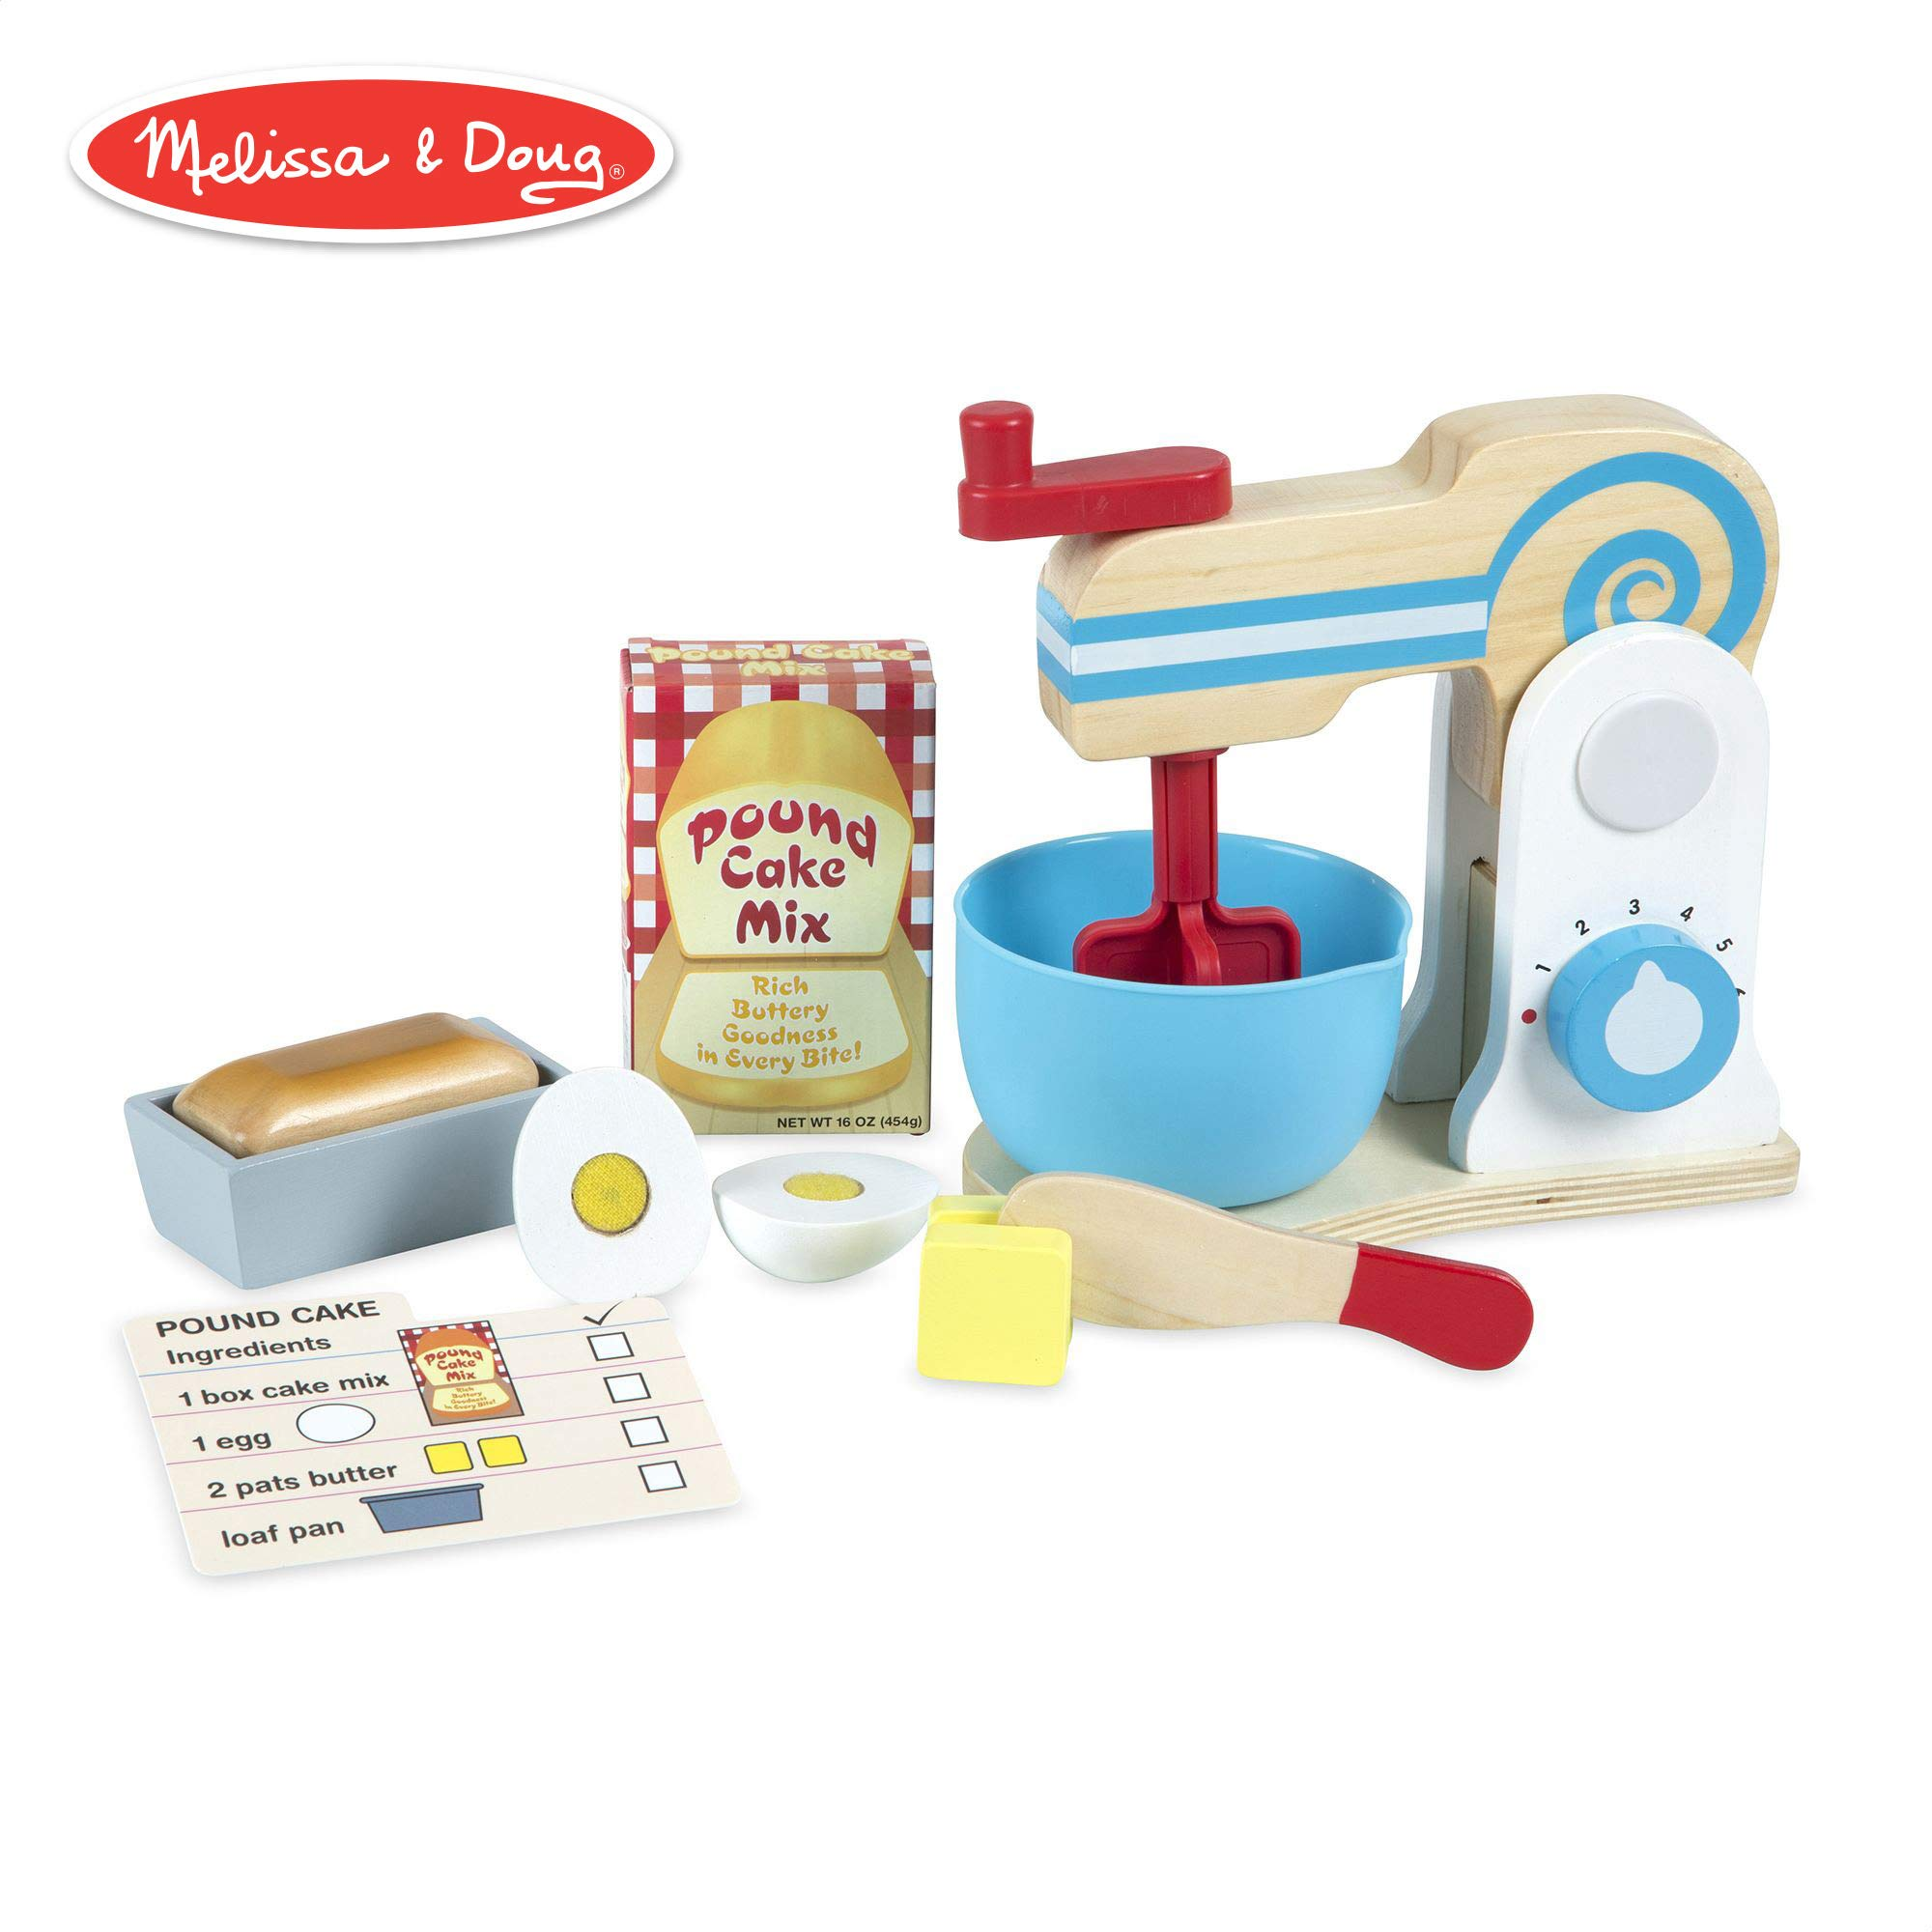 Melissa & Doug Wooden Make-a-Cake Mixer Set (Kitchen Toy, Numbered Turning Dials, Encourages Creative Thinking, 11-Piece Set, 13.5″ H × 10″ W × 5″ L)